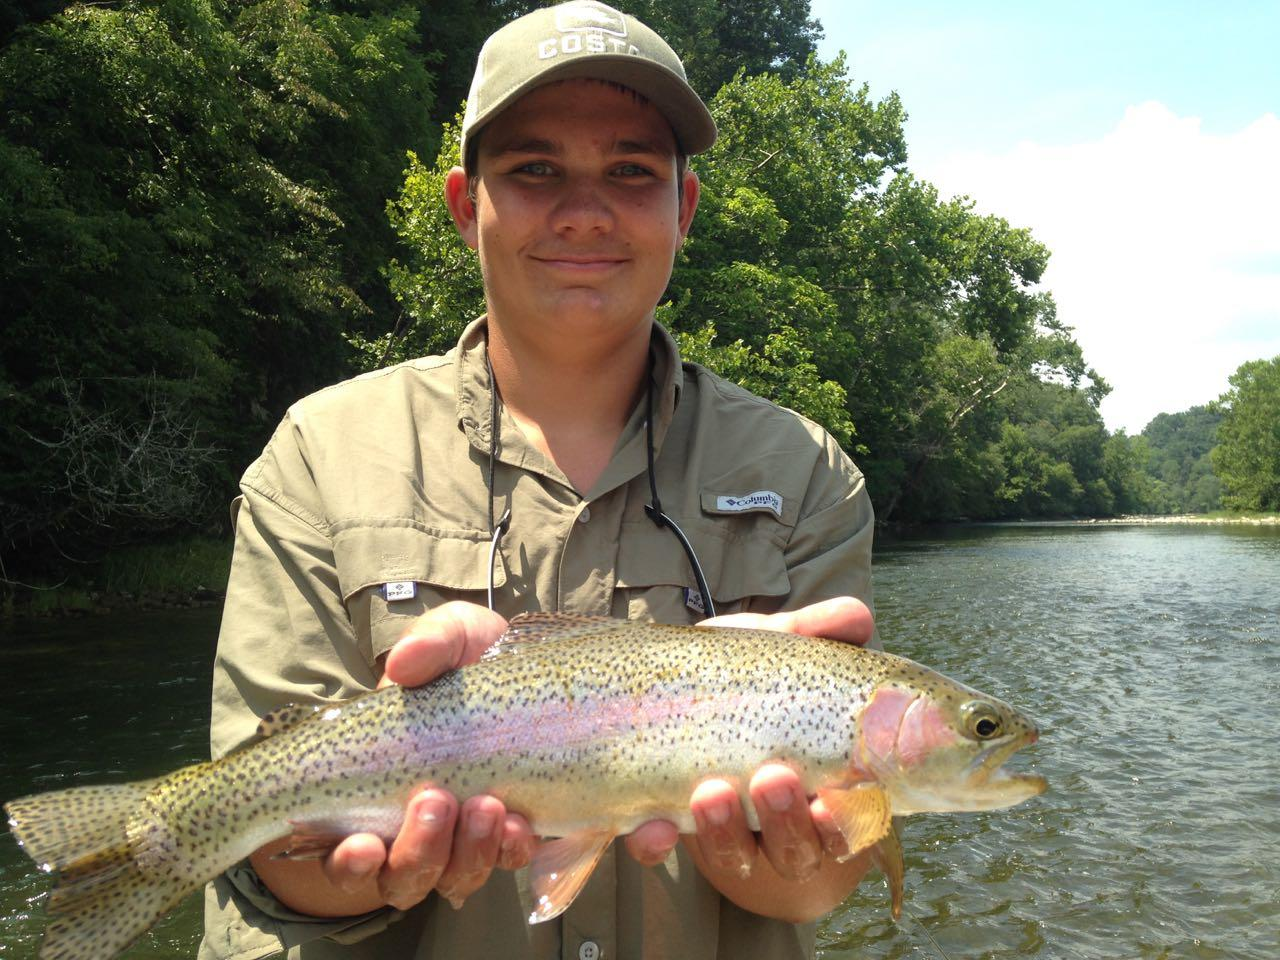 South holston river rainbow trout riverstone fly fishing for South holston river fishing report